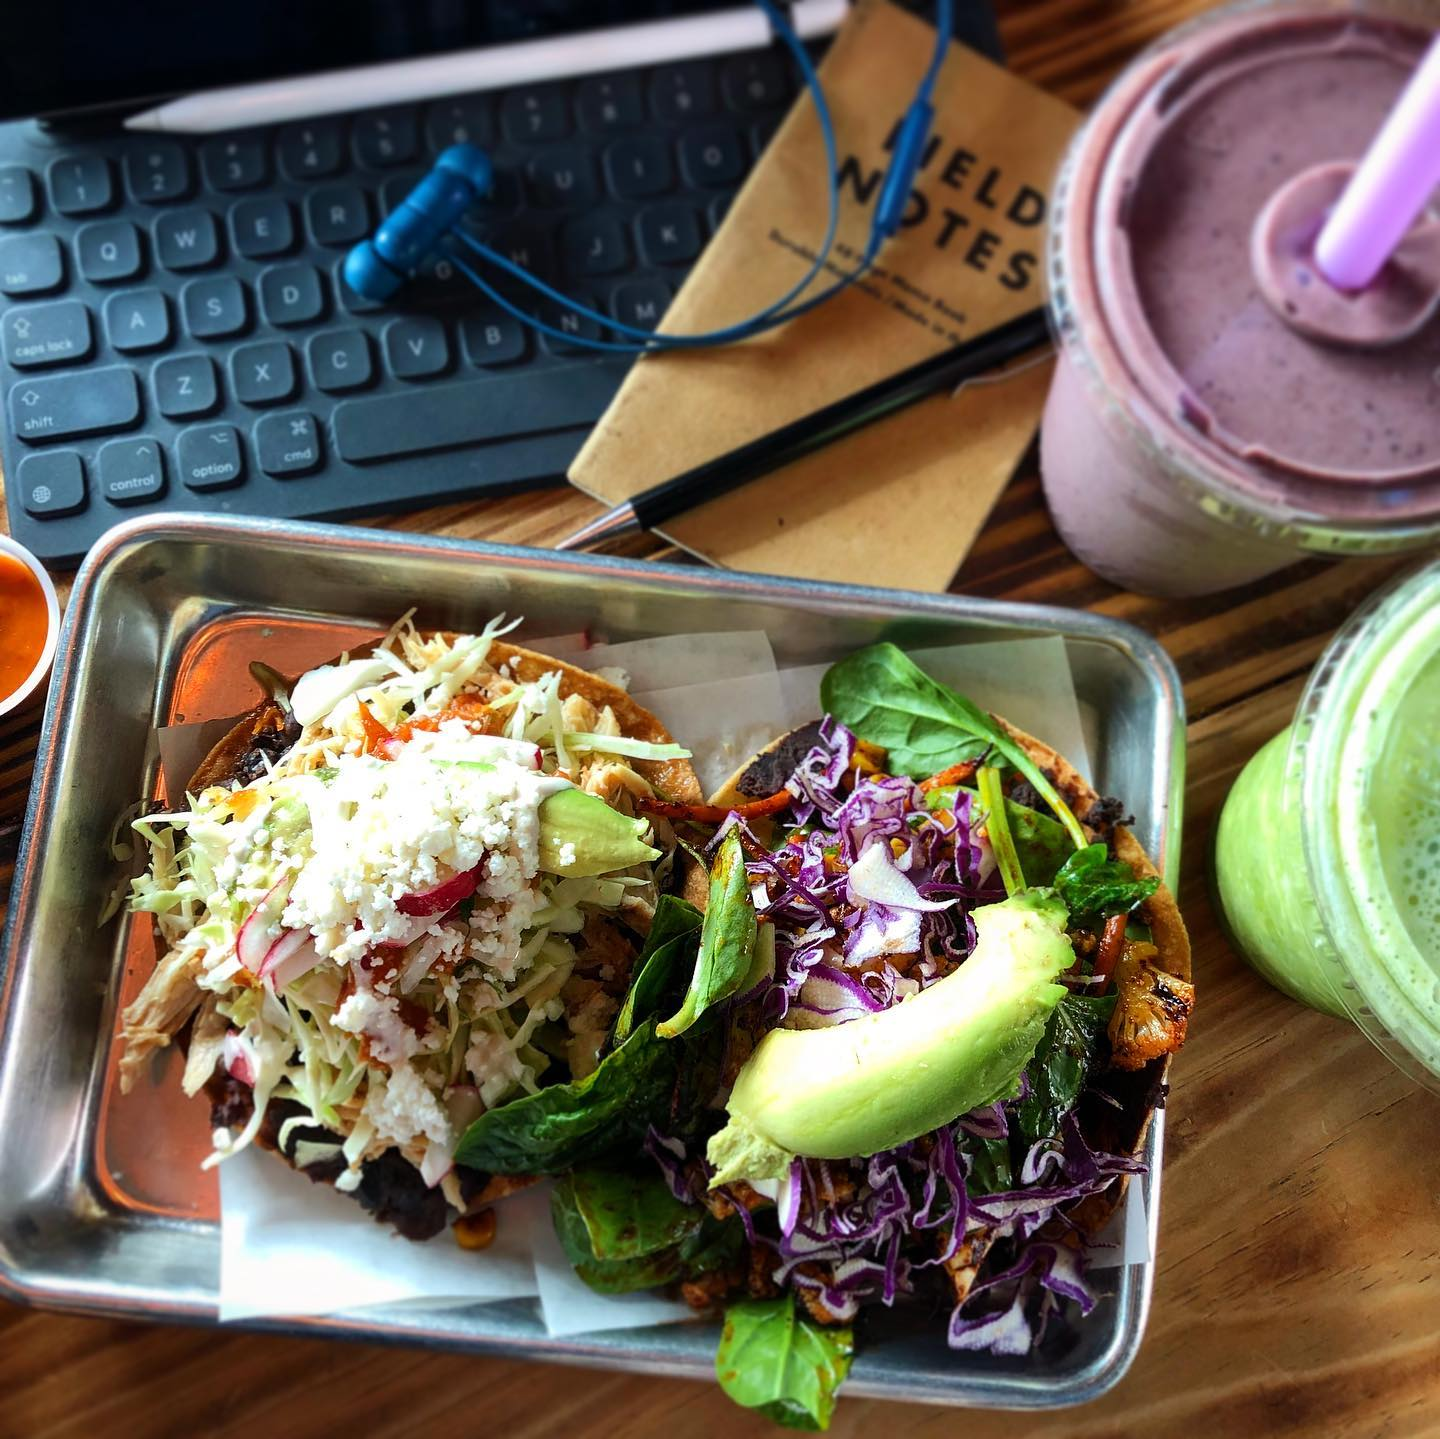 Veracruz All Natural Is Rolling New Taco and Juice Trucks Into East Austin